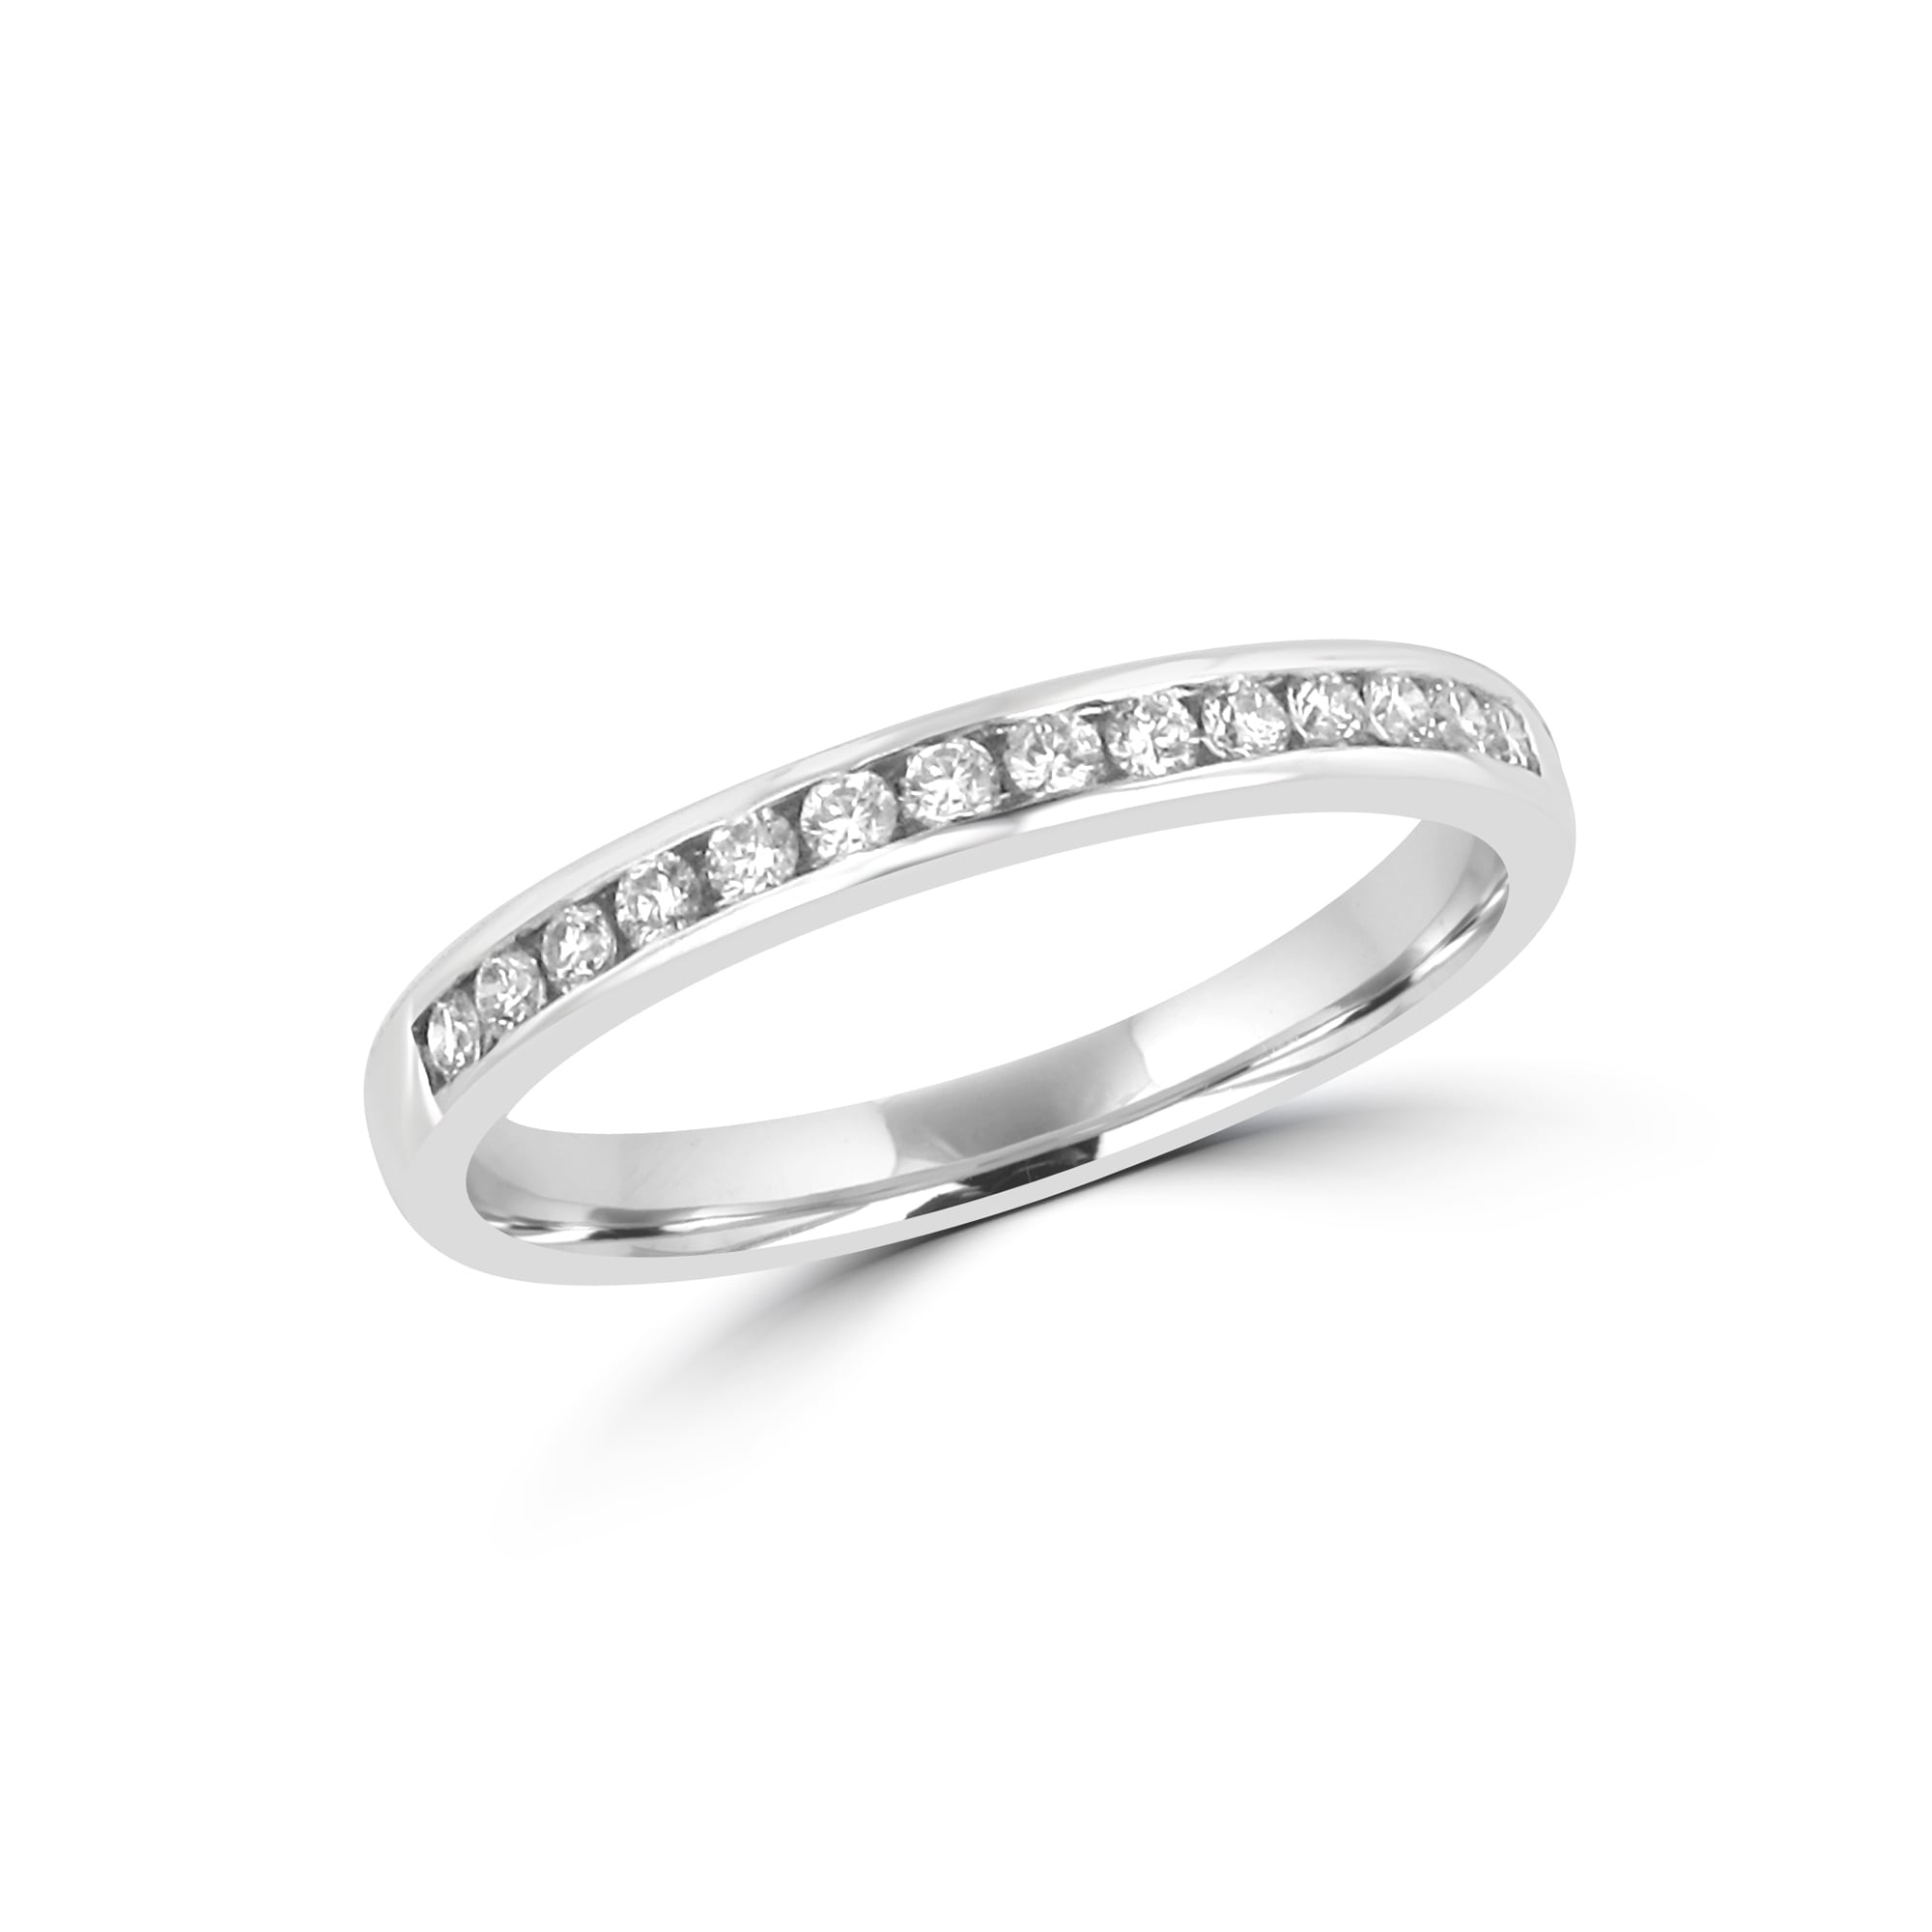 ring jewelry silver free contour shipping guard channel product set diamond tdw watches today sterling twobirch overstock